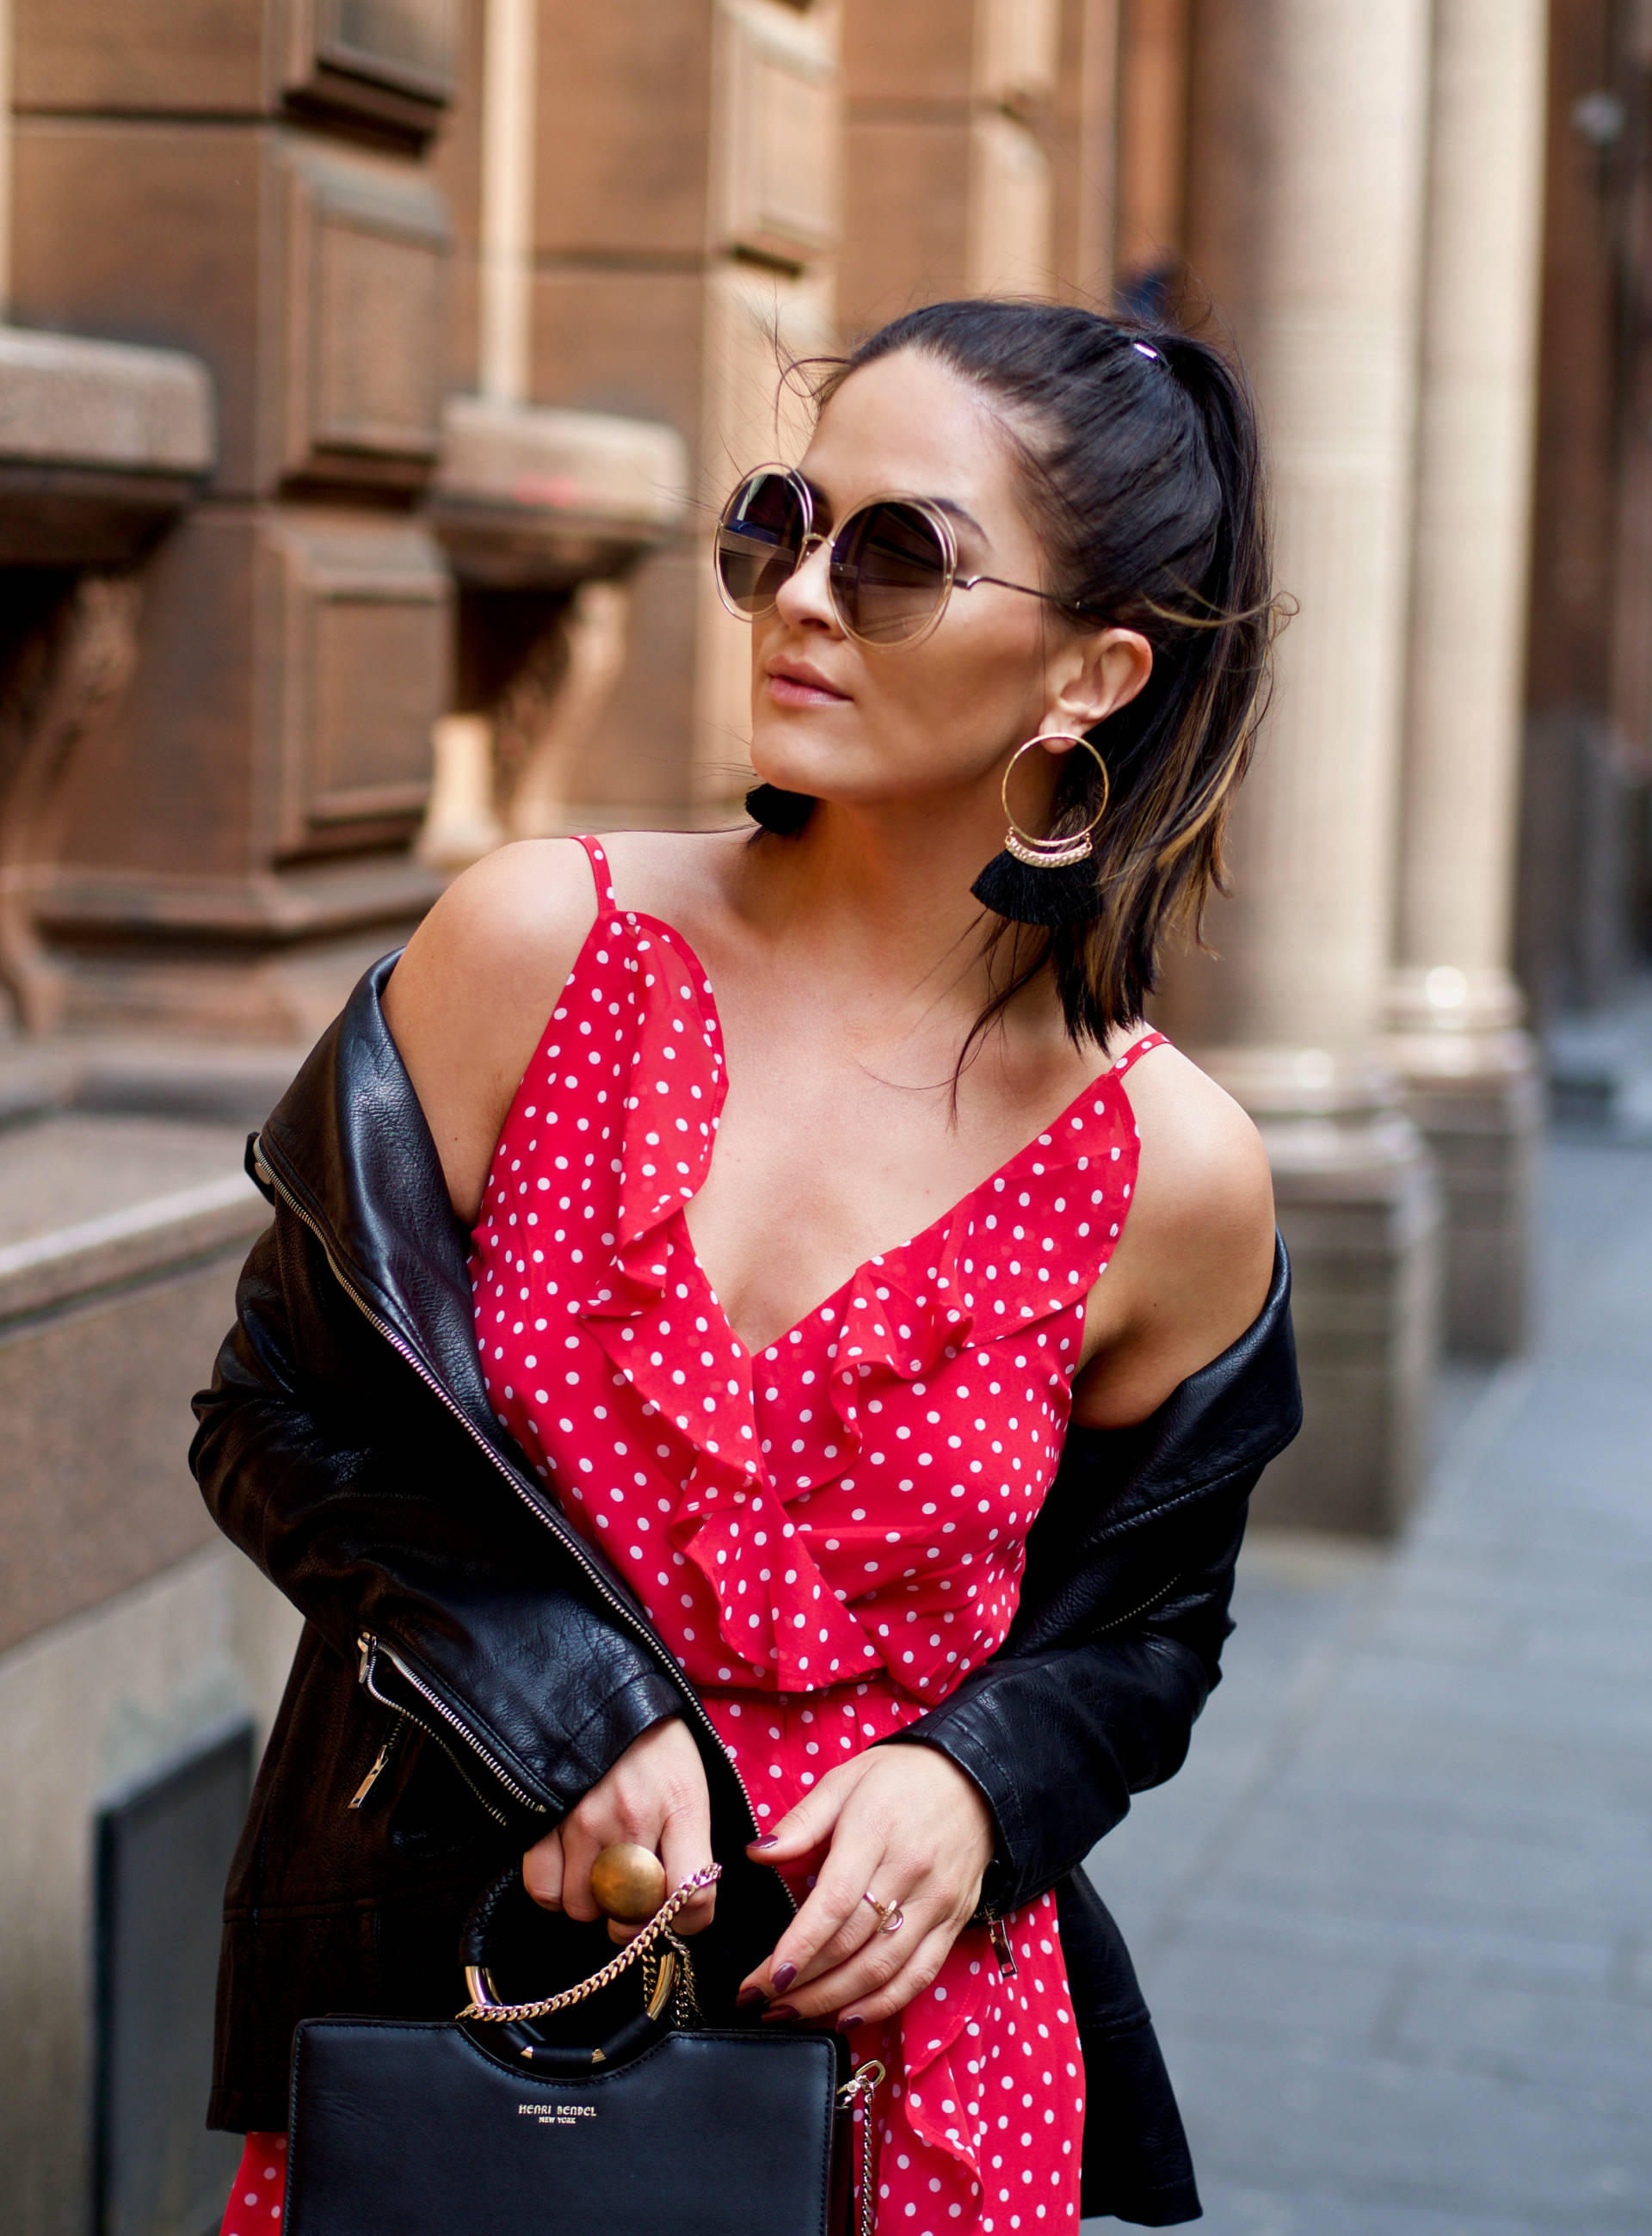 how to style a red dress summer casual edgy street style lafotka